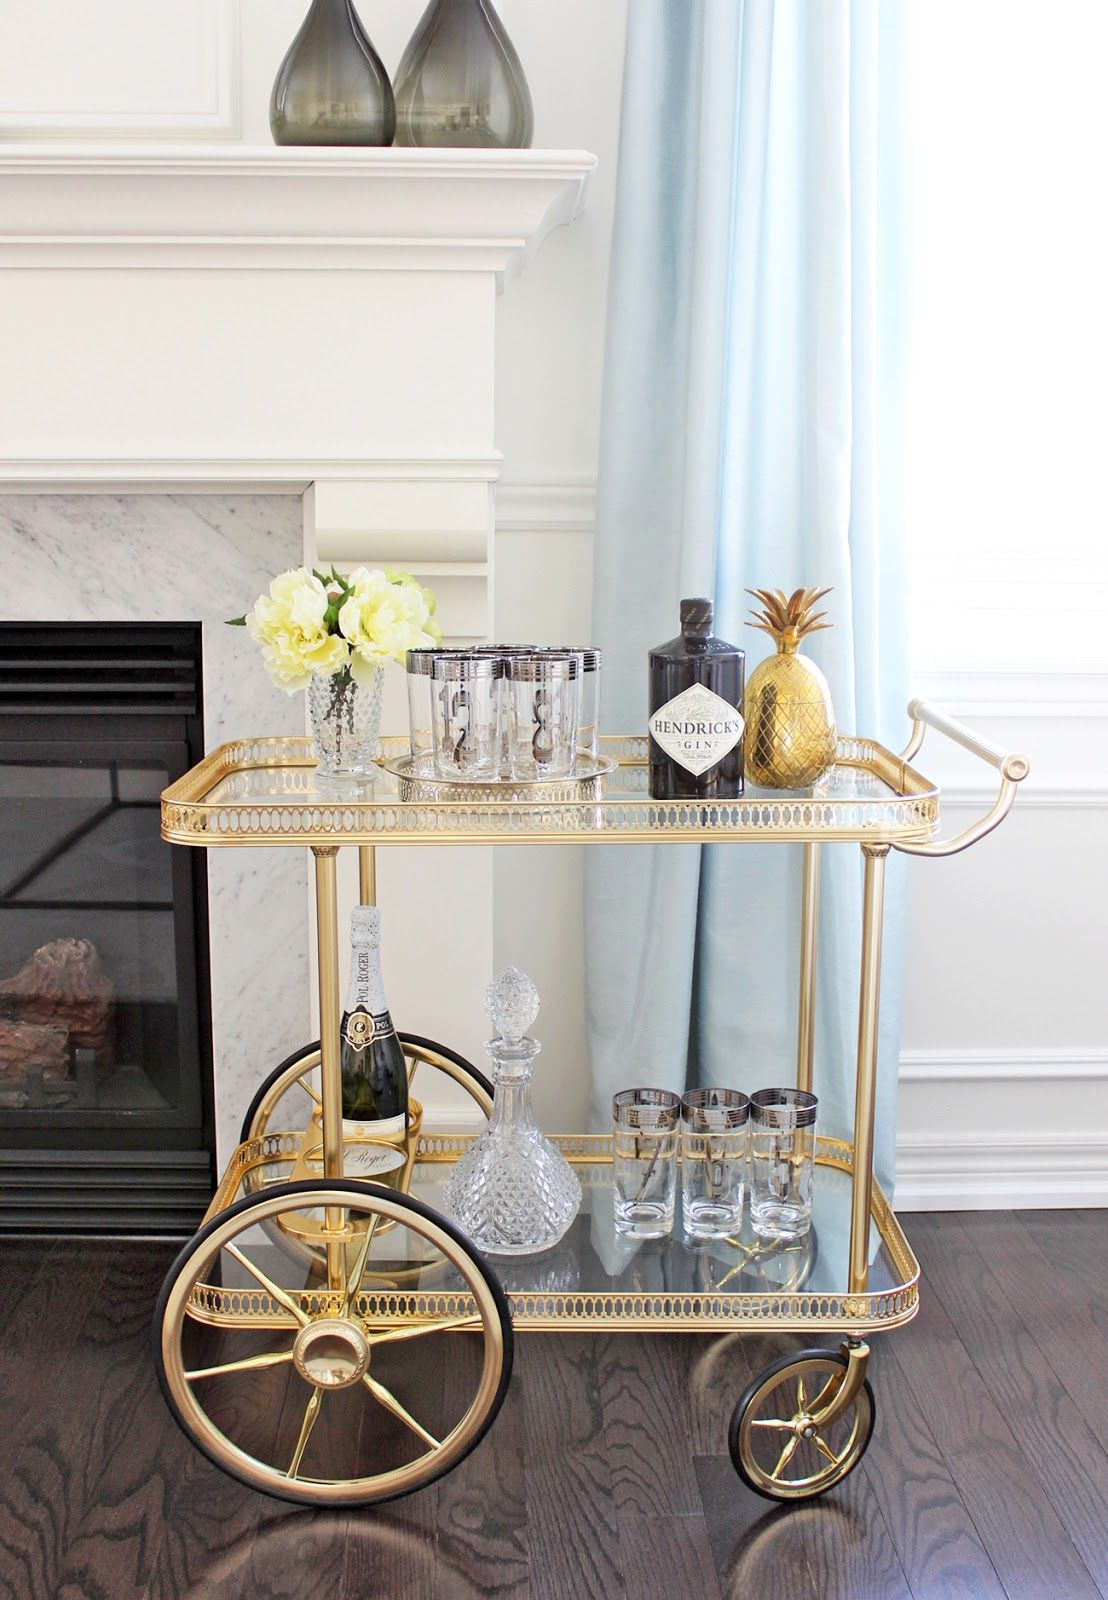 5 stunning ways to style your bar cart bars carts and trays bar rh pinterest com